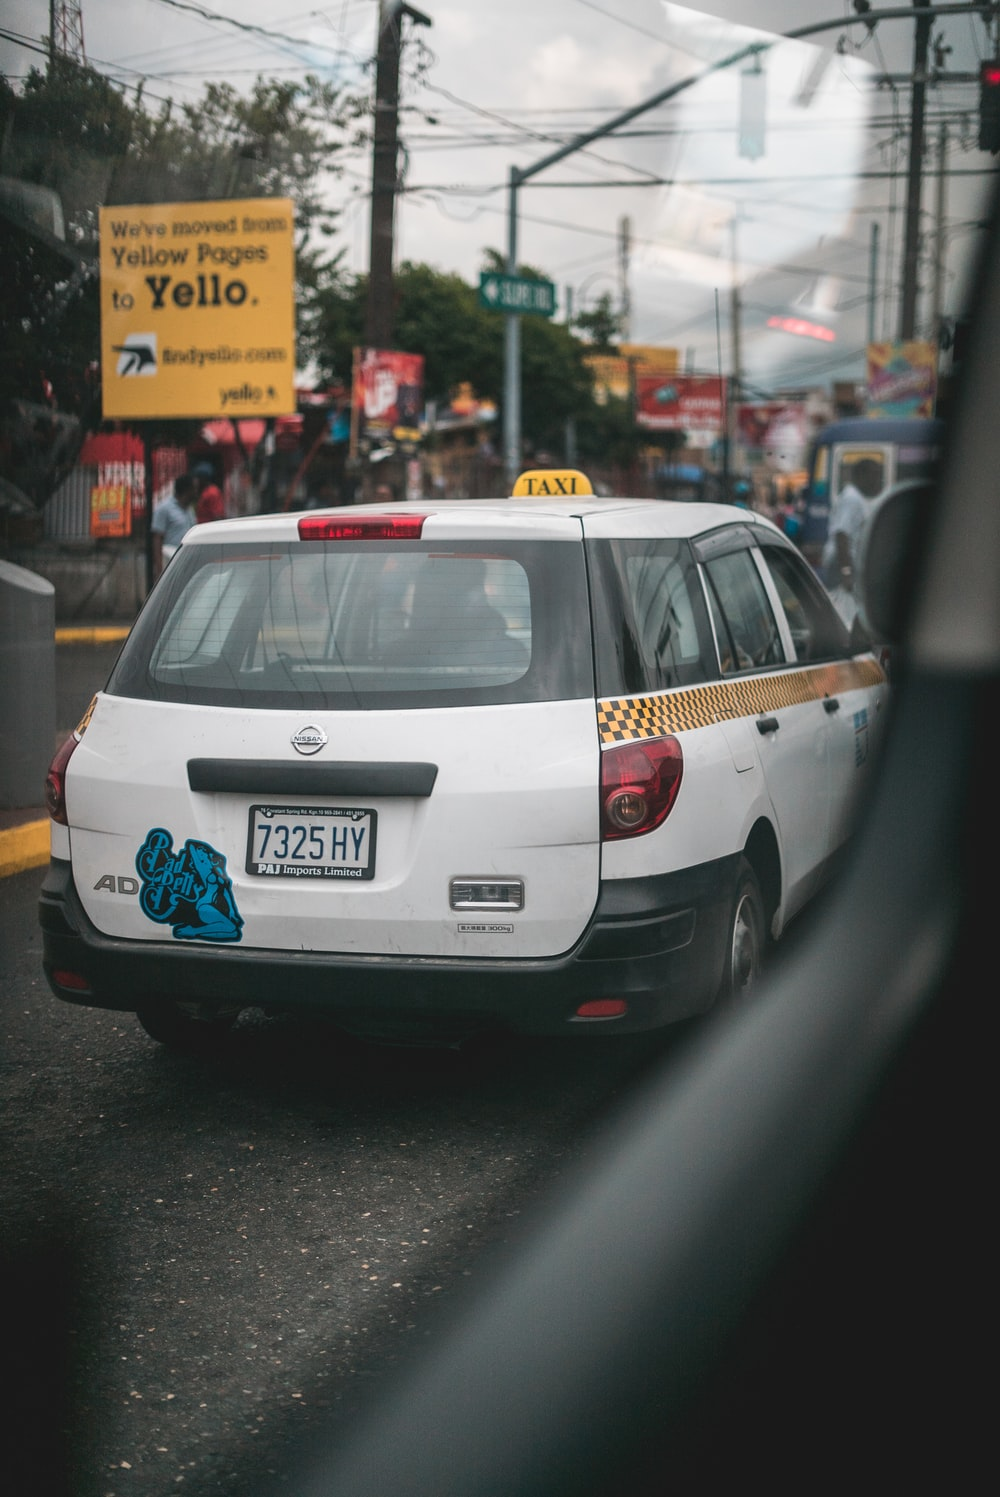 white Nissan vehicle on road